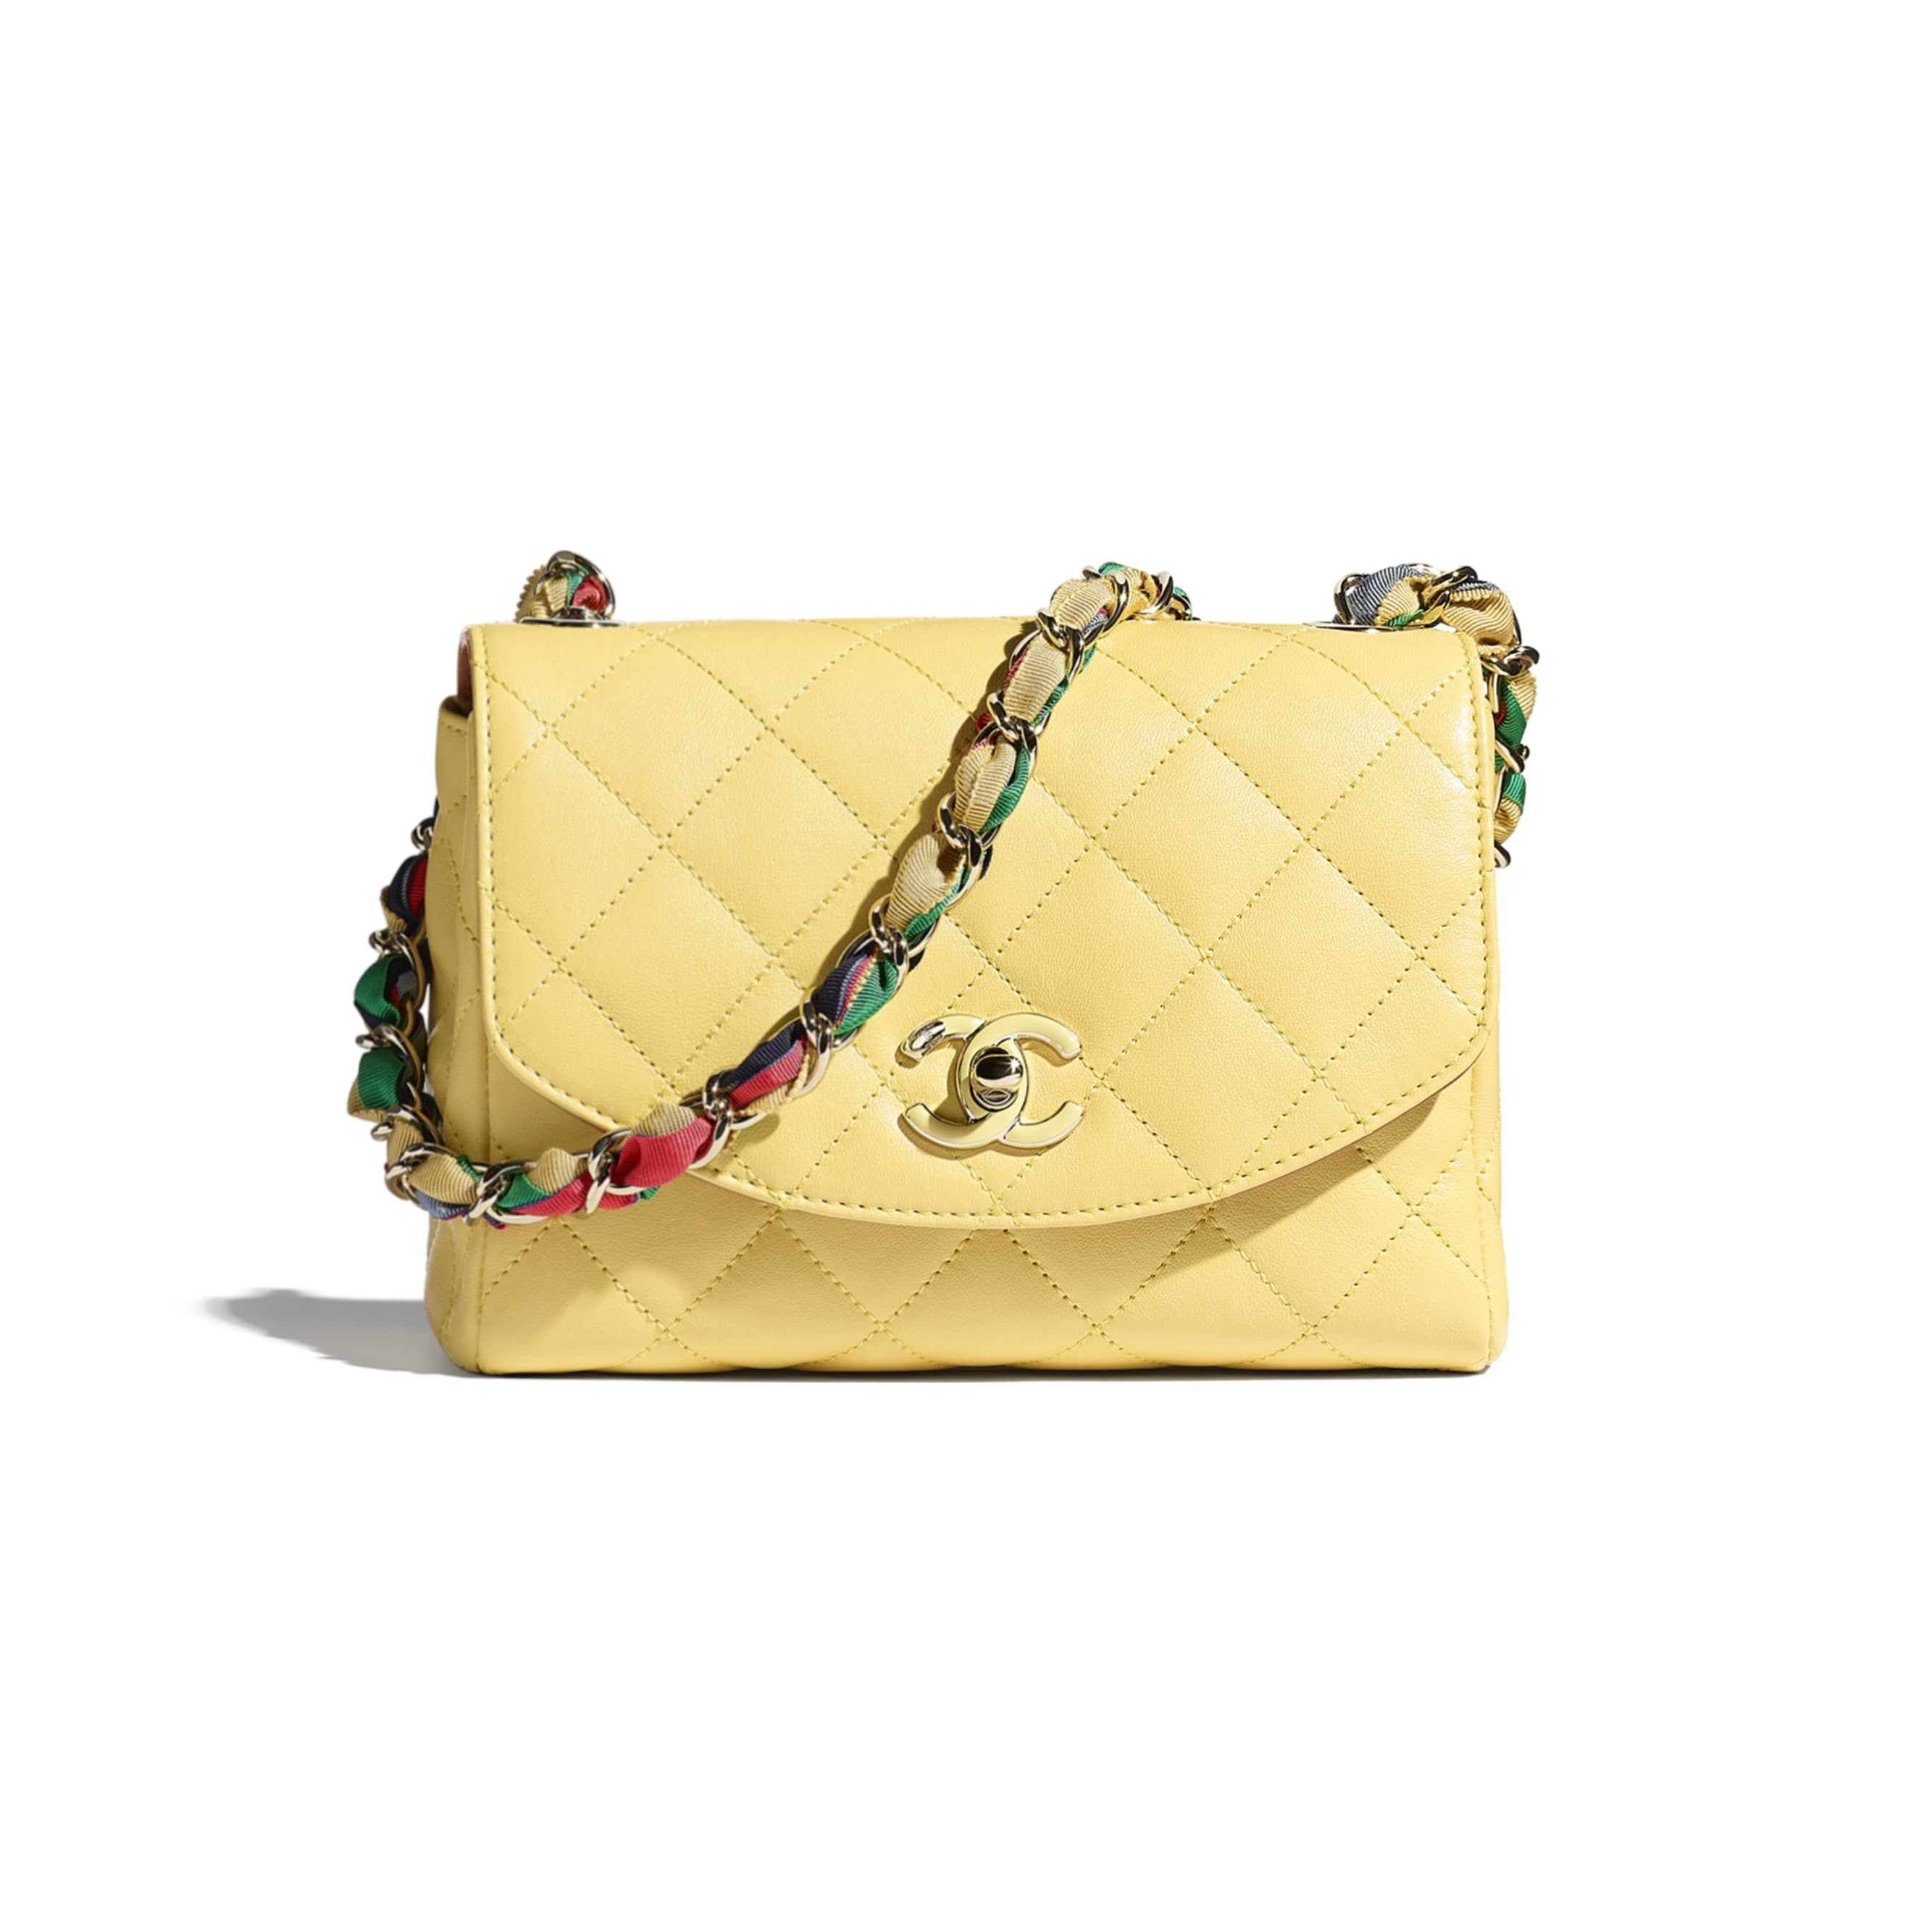 Flap Bag - Yellow - Lambskin, Mixed Fibers & Gold-Tone Metal - CHANEL - Default view - see standard sized version